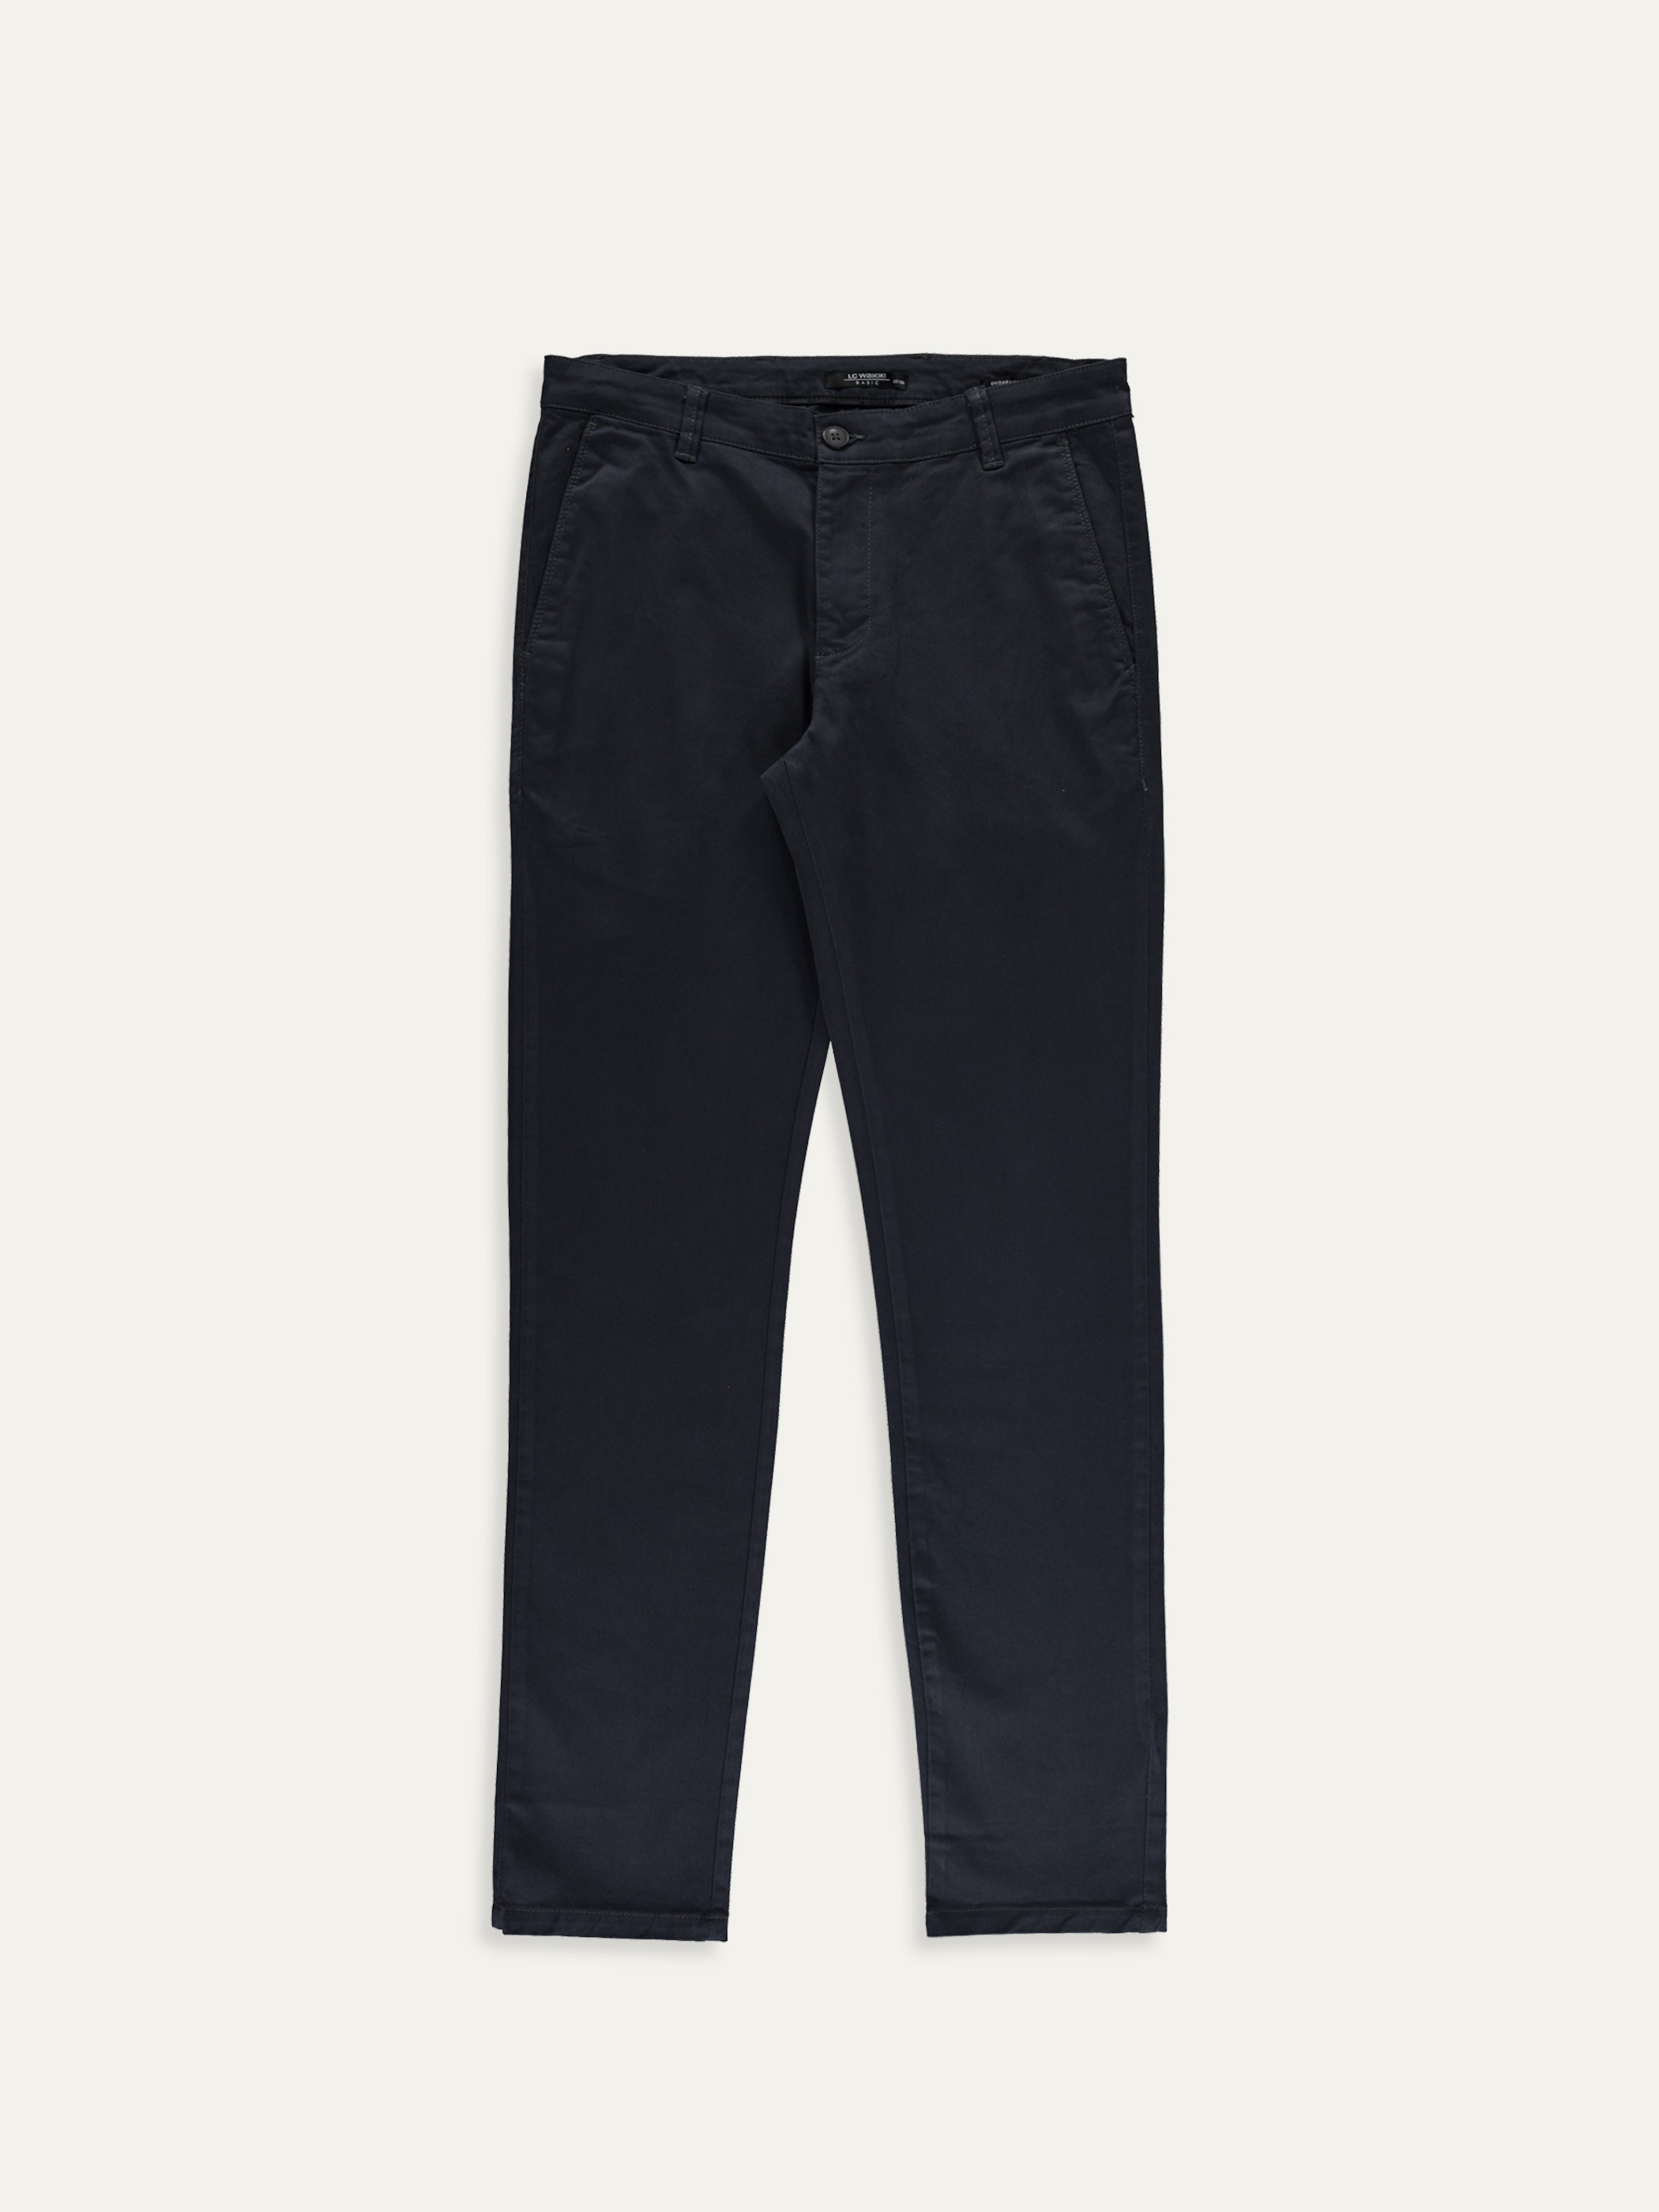 ANTHRACITE - Chino Trousers - 9W2431Z8